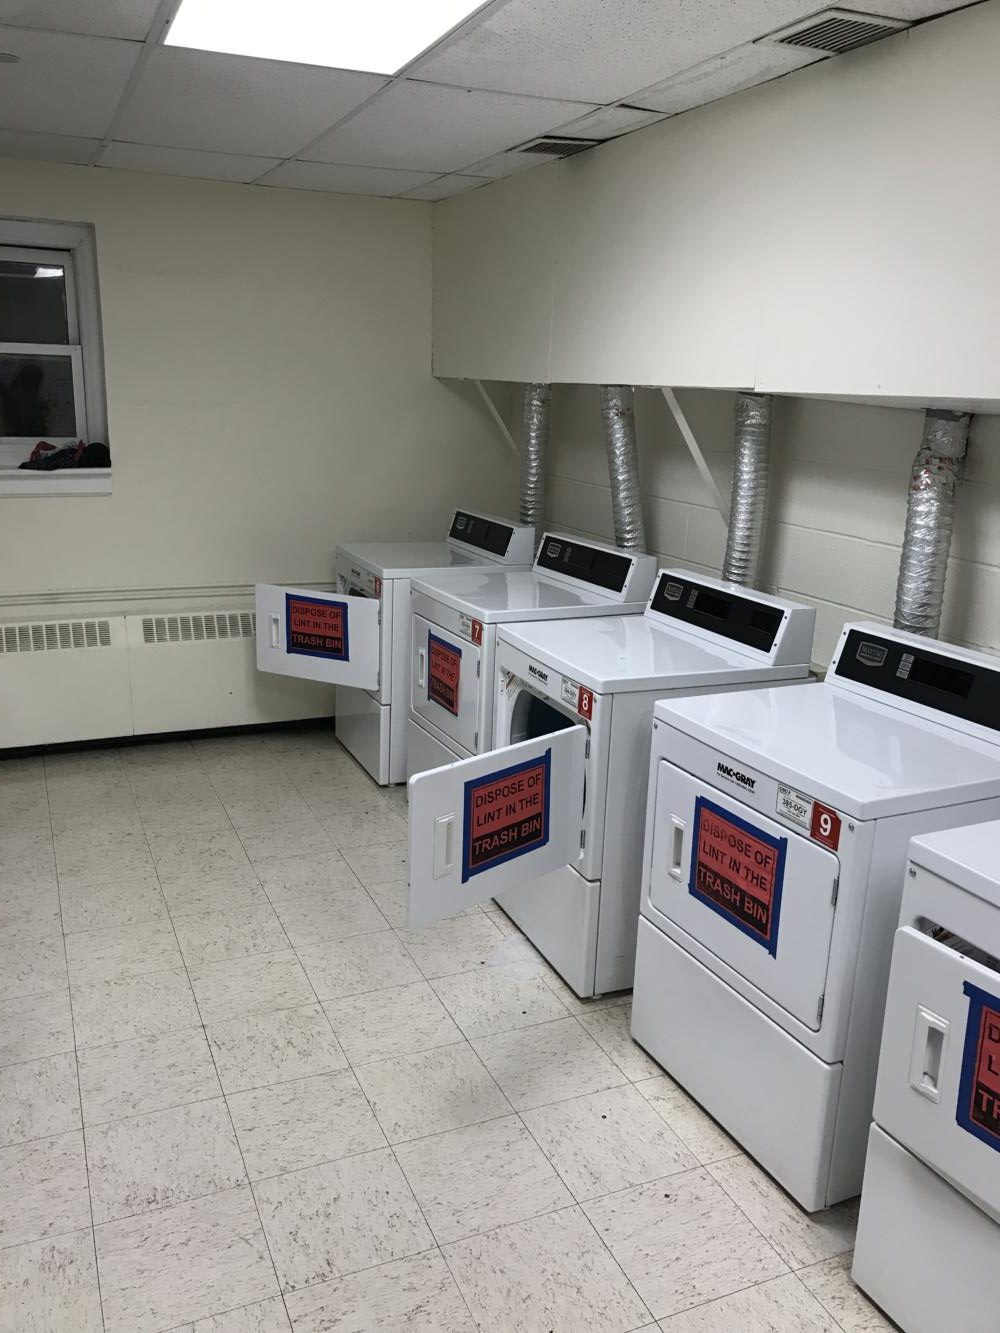 The 5 lonely dryers in Martin Hall's Laundry Room